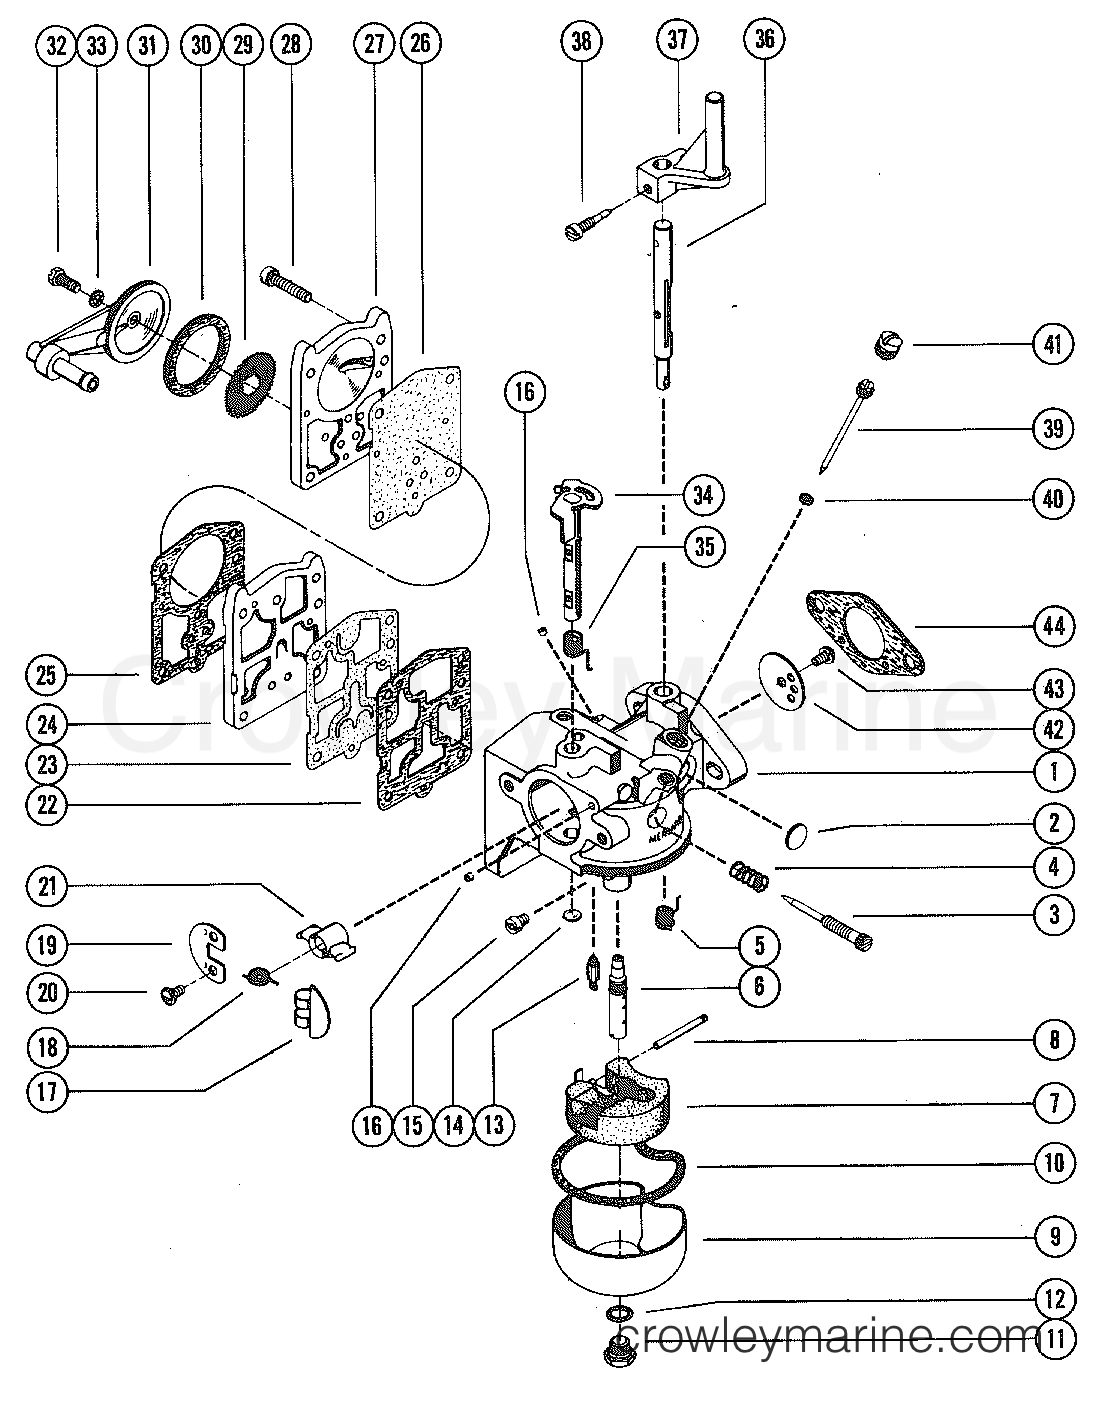 Wiring Diagram Mercury 9 9 4 Stroke - Wiring Diagram Directory on yamaha schematics, yamaha motor diagram, suzuki quadrunner 160 parts diagram, yamaha ignition diagram, yamaha steering diagram, yamaha wiring code, yamaha solenoid diagram,